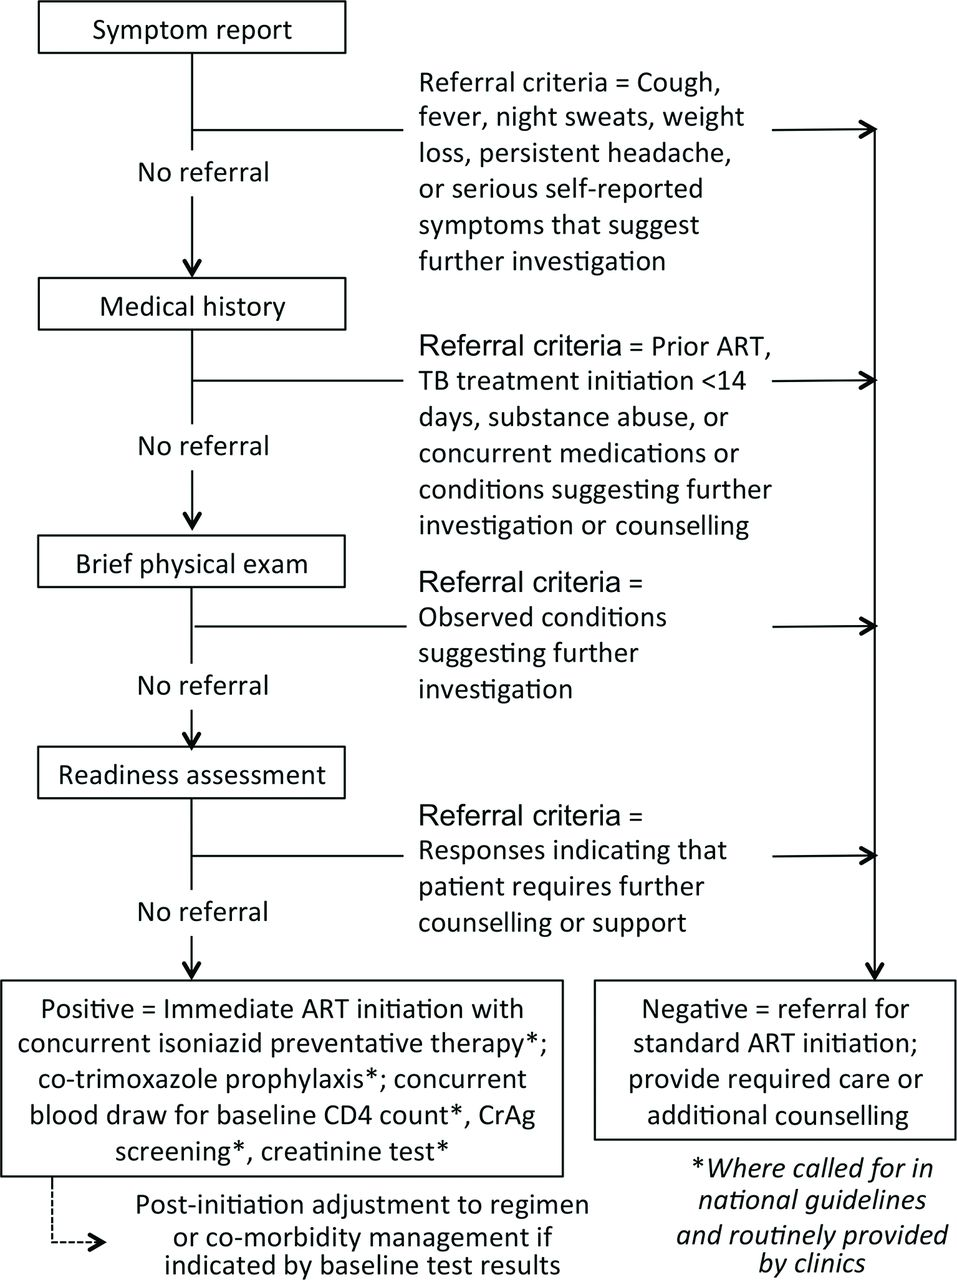 Simplified clinical algorithm for identifying patients